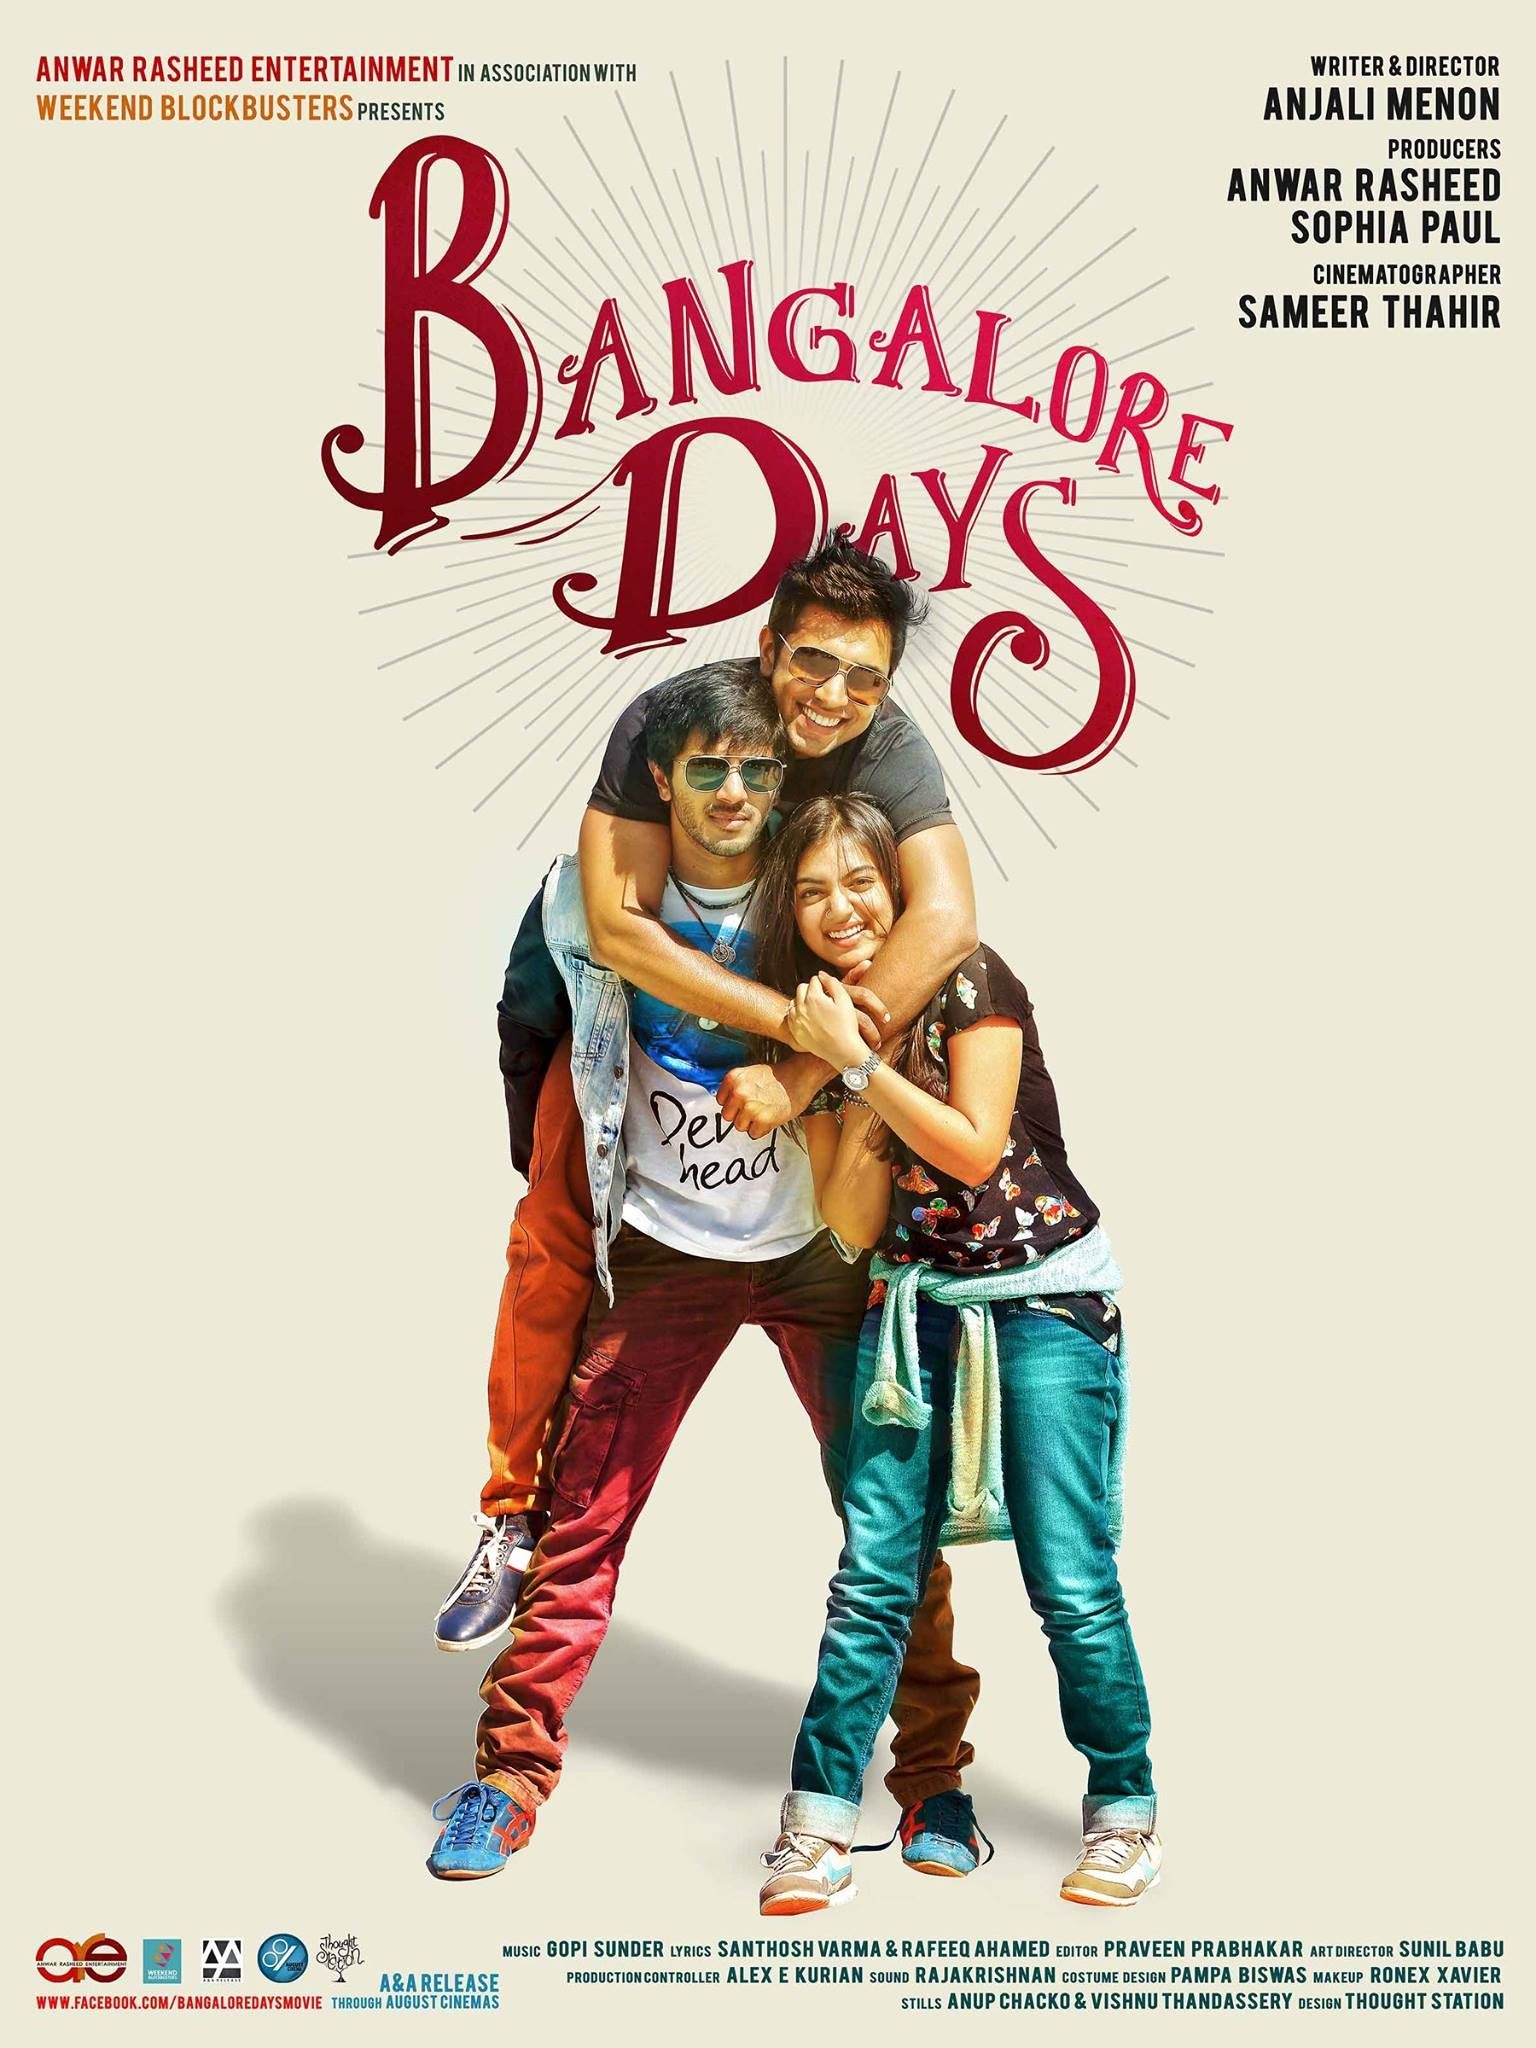 bangalore days movie torrent download with eng sub kickass